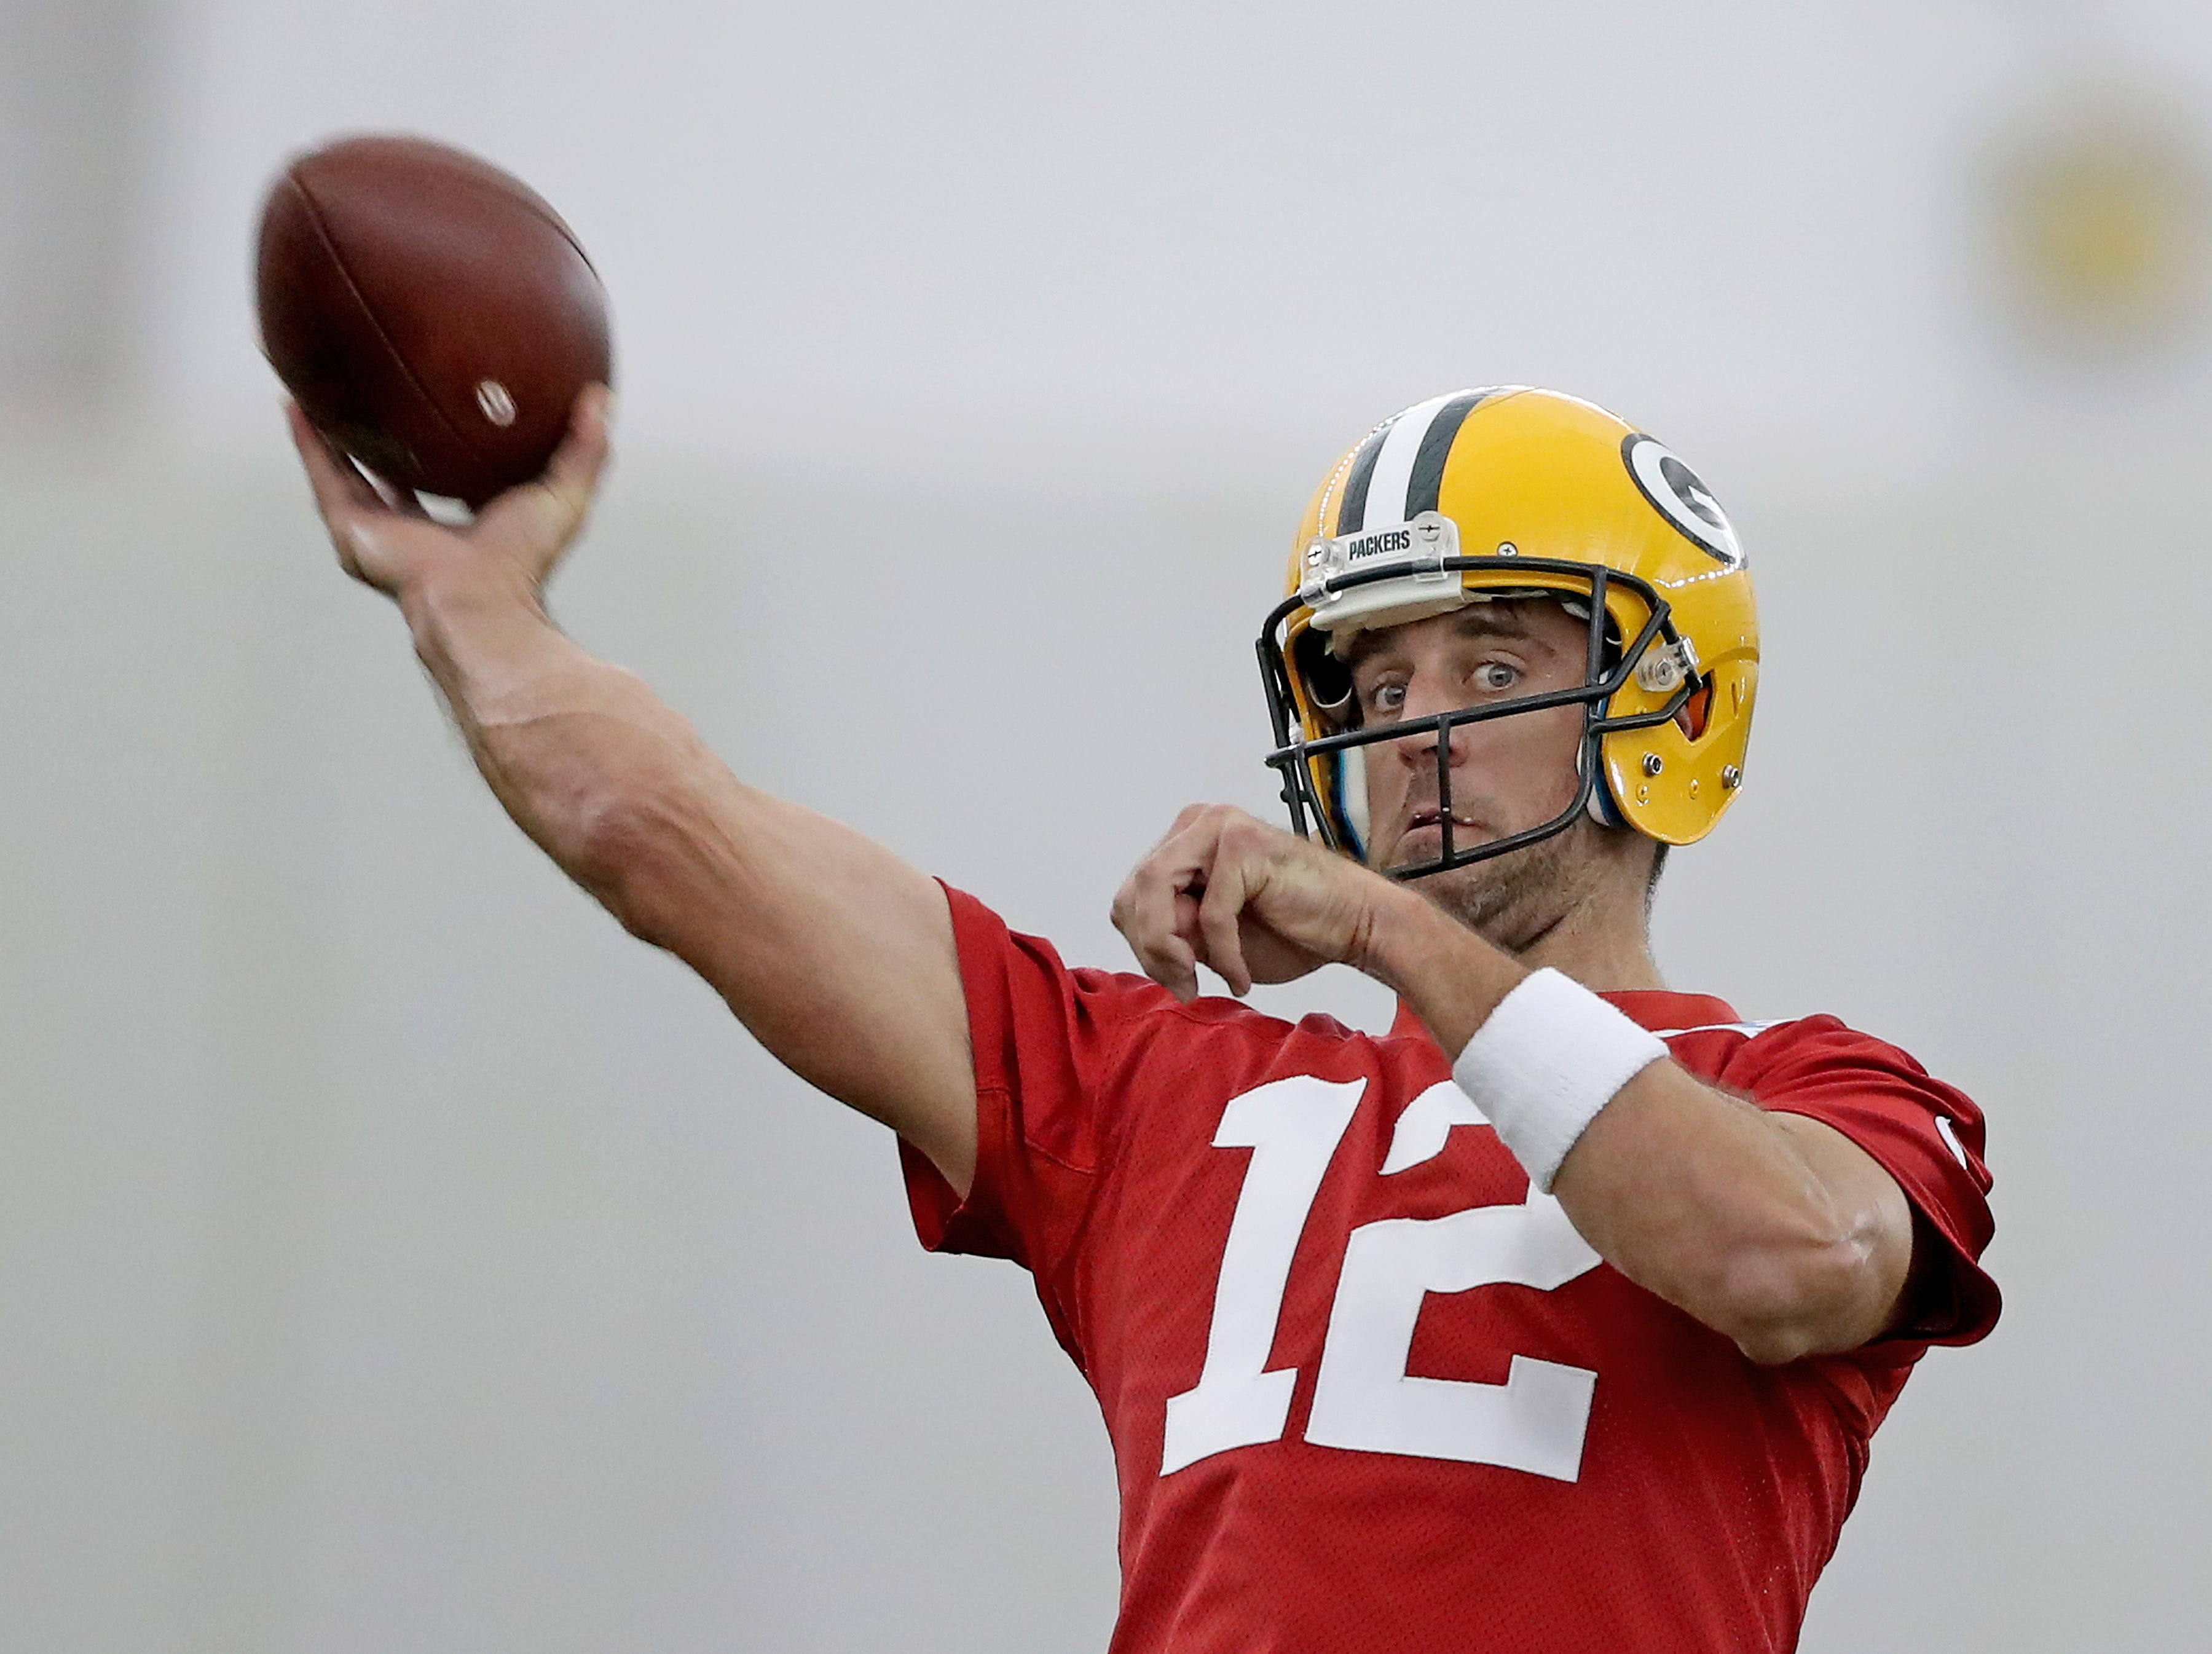 Green Bay Packers quarterback Aaron Rodgers (12) during Packers practice in the Don Hutson Center Monday, September 3, 2018 in Ashwaubenon, Wis